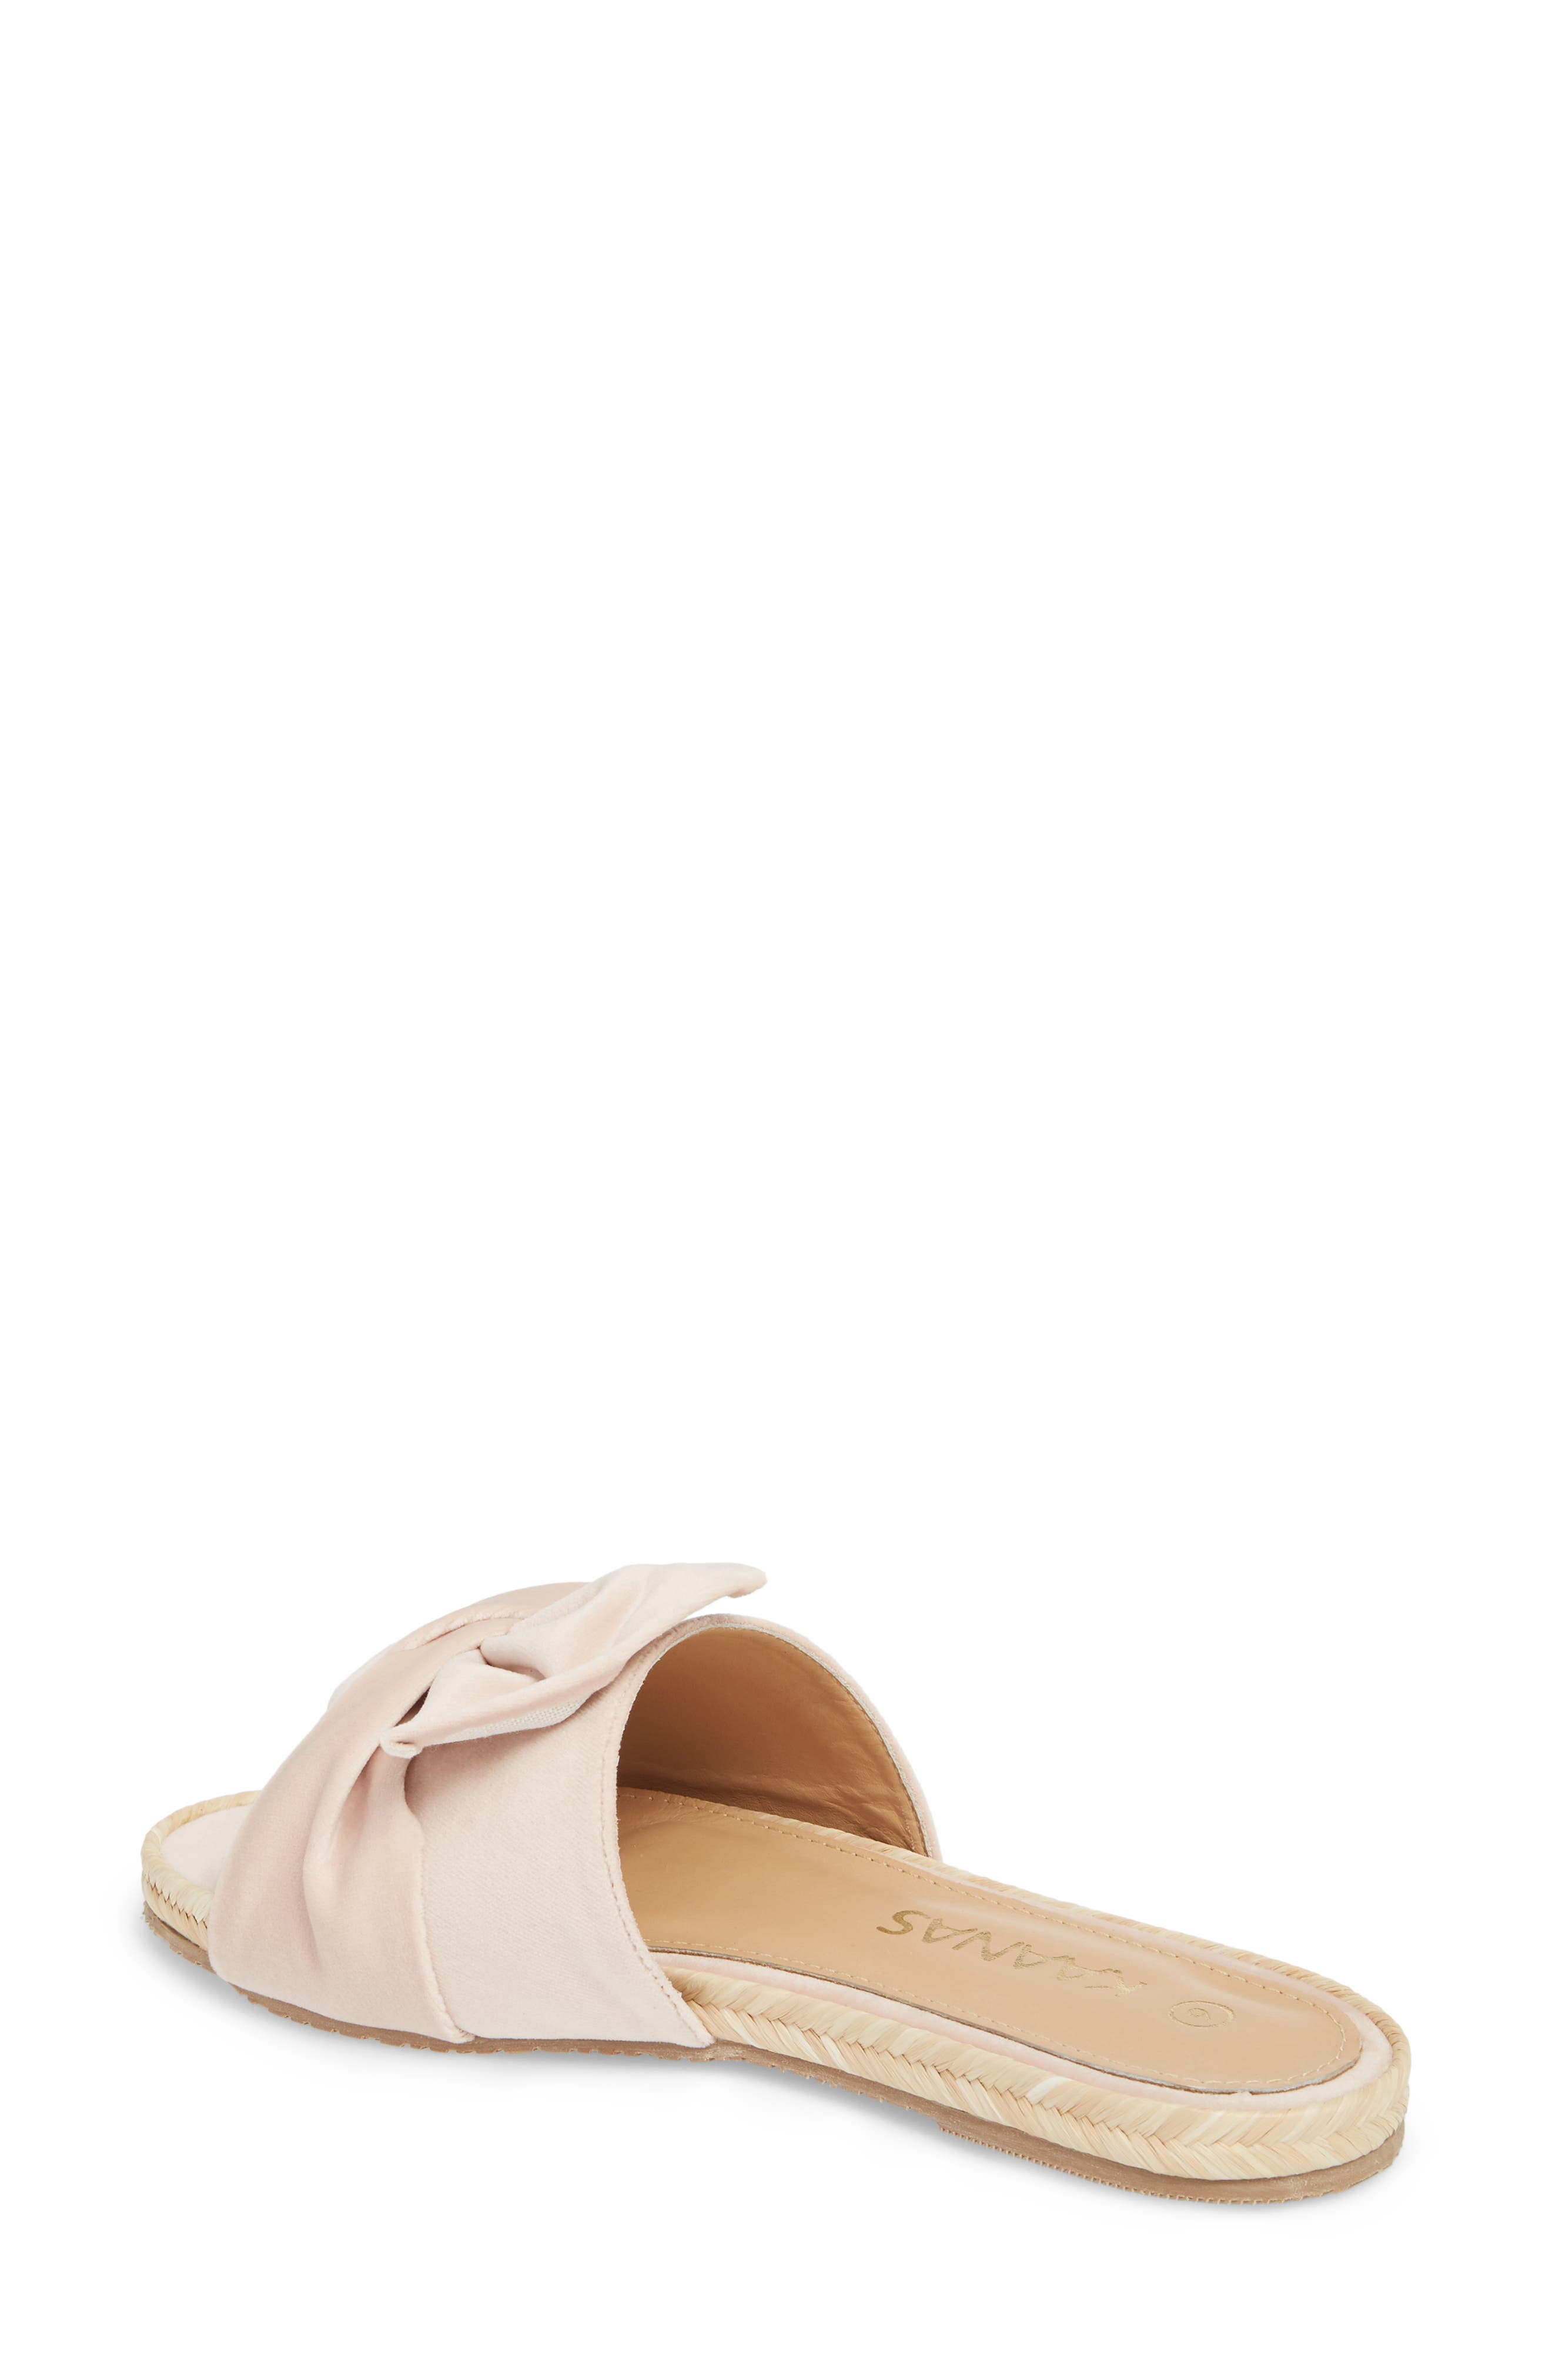 Sausalito Knotted Slide Sandal,                             Alternate thumbnail 2, color,                             Nude